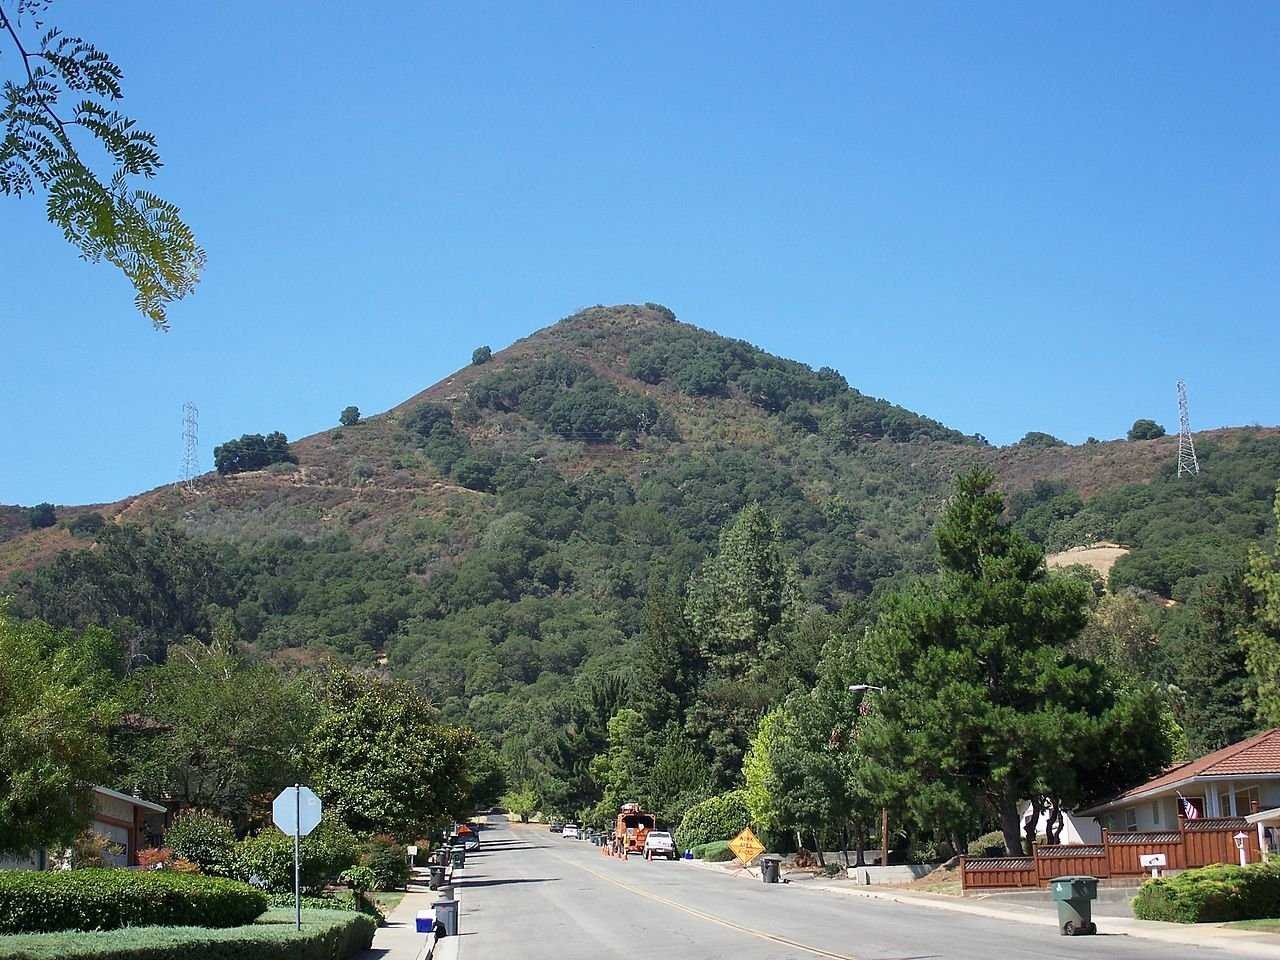 17. Morgan Hill, California